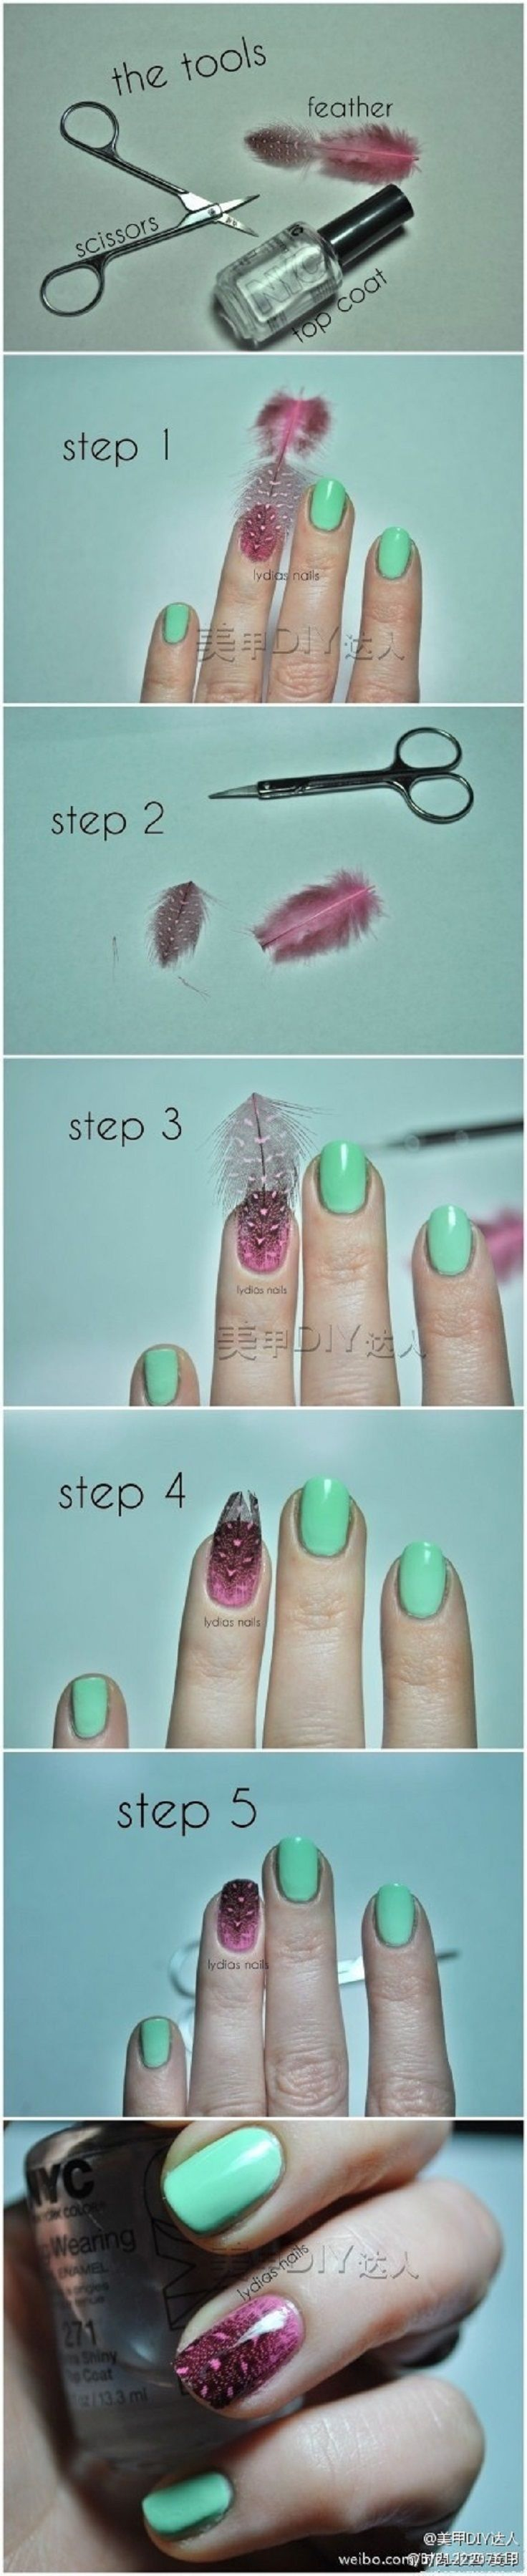 Top 10 DIY Easy Nail Ideas. Great for bird owners! Save those feathers that fall to the ground! :)